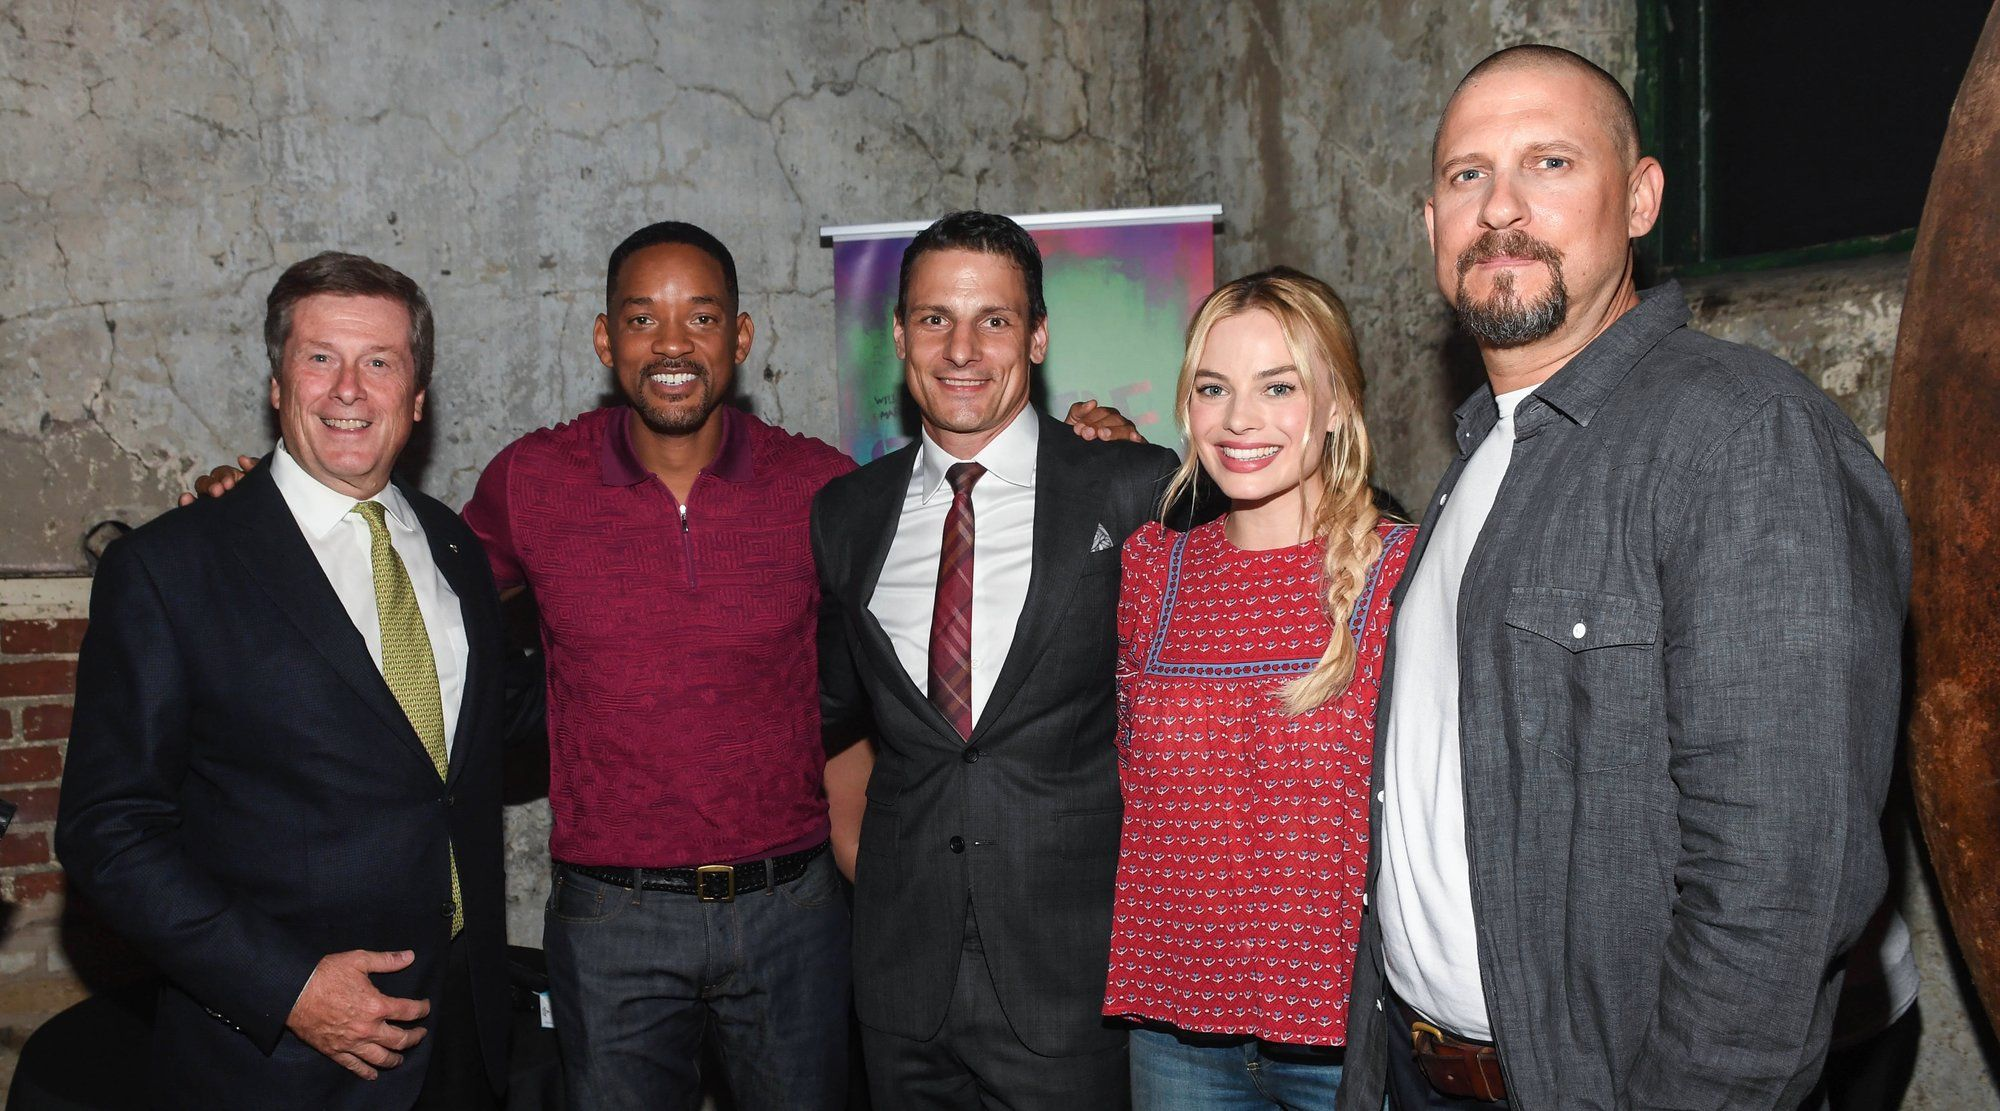 One of a kind Suicide Squad exhibit open today and tomorrow in Toronto (PHOTOS)